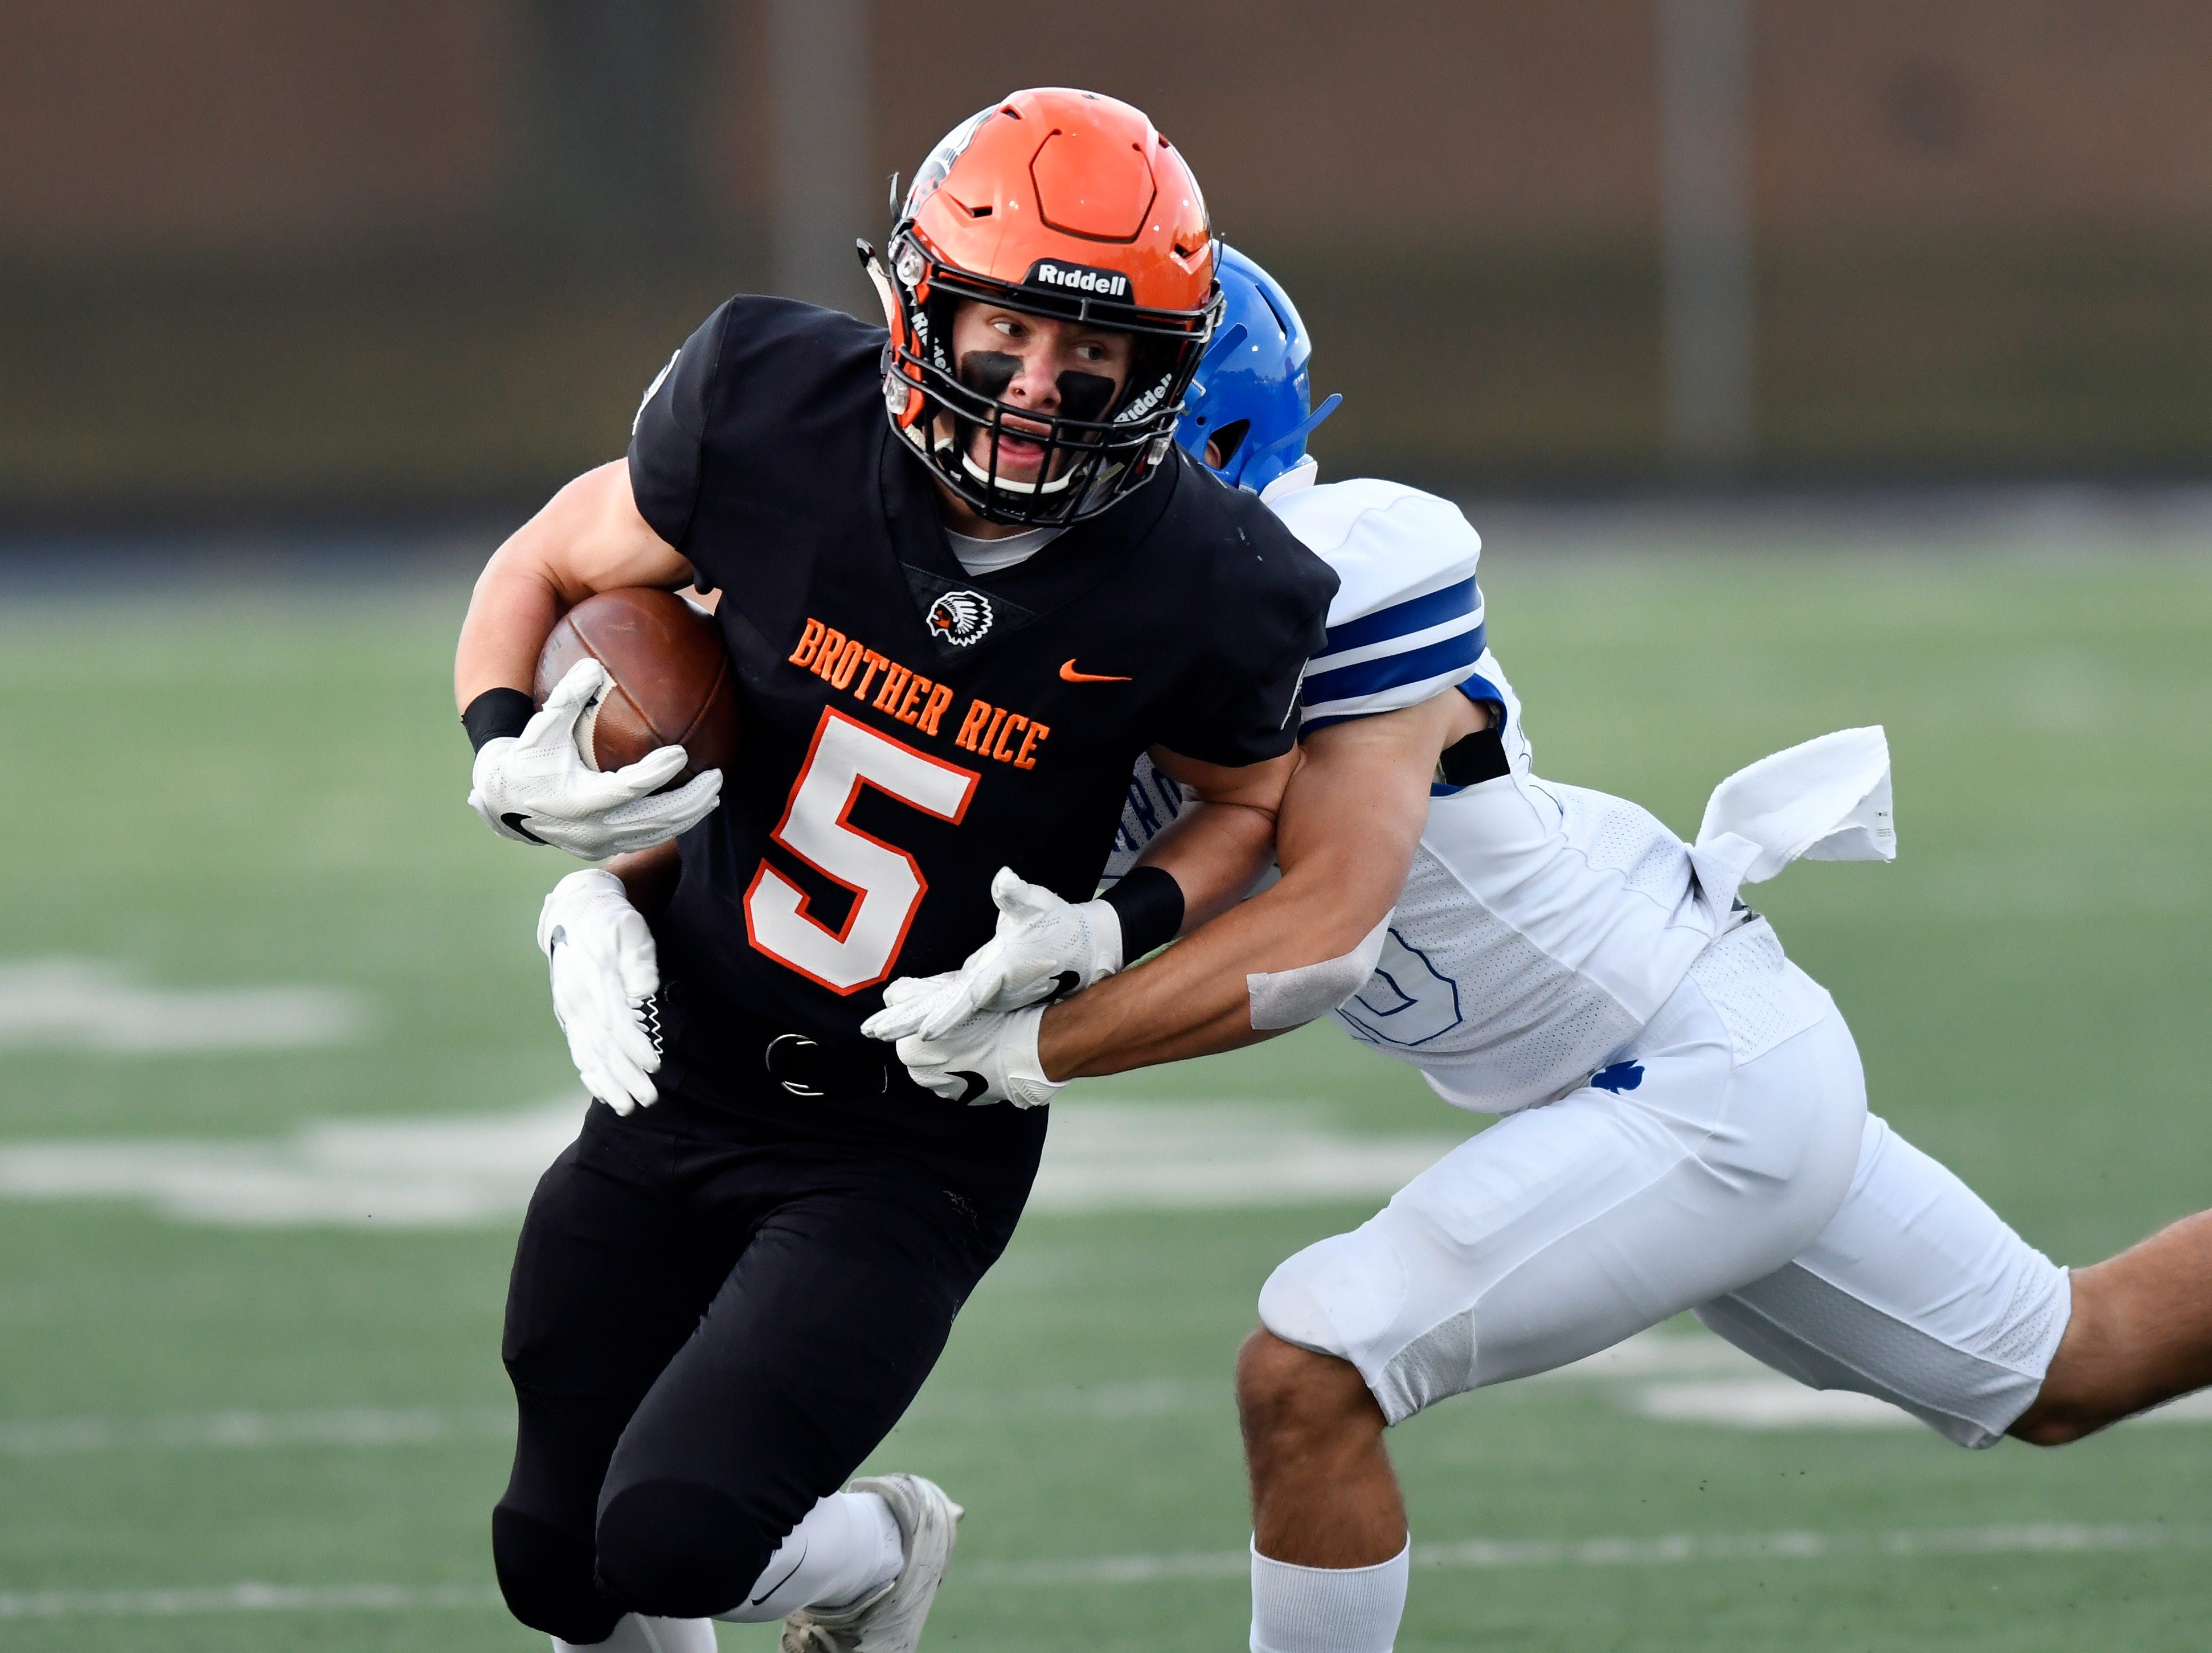 Birmingham Brother Rice wide receiver Patrick O'Hara (5) runs for yardage and is tackled by Detroit Catholic Central defensive back Parker Bohland (23) in the first quarter, Saturday, Sept. 22, 2018 at Hurley Field in Berkley, Mich.  Catholic Central defeated Brother Rice, 21-0.  (Jose Juarez/Hometown Life)